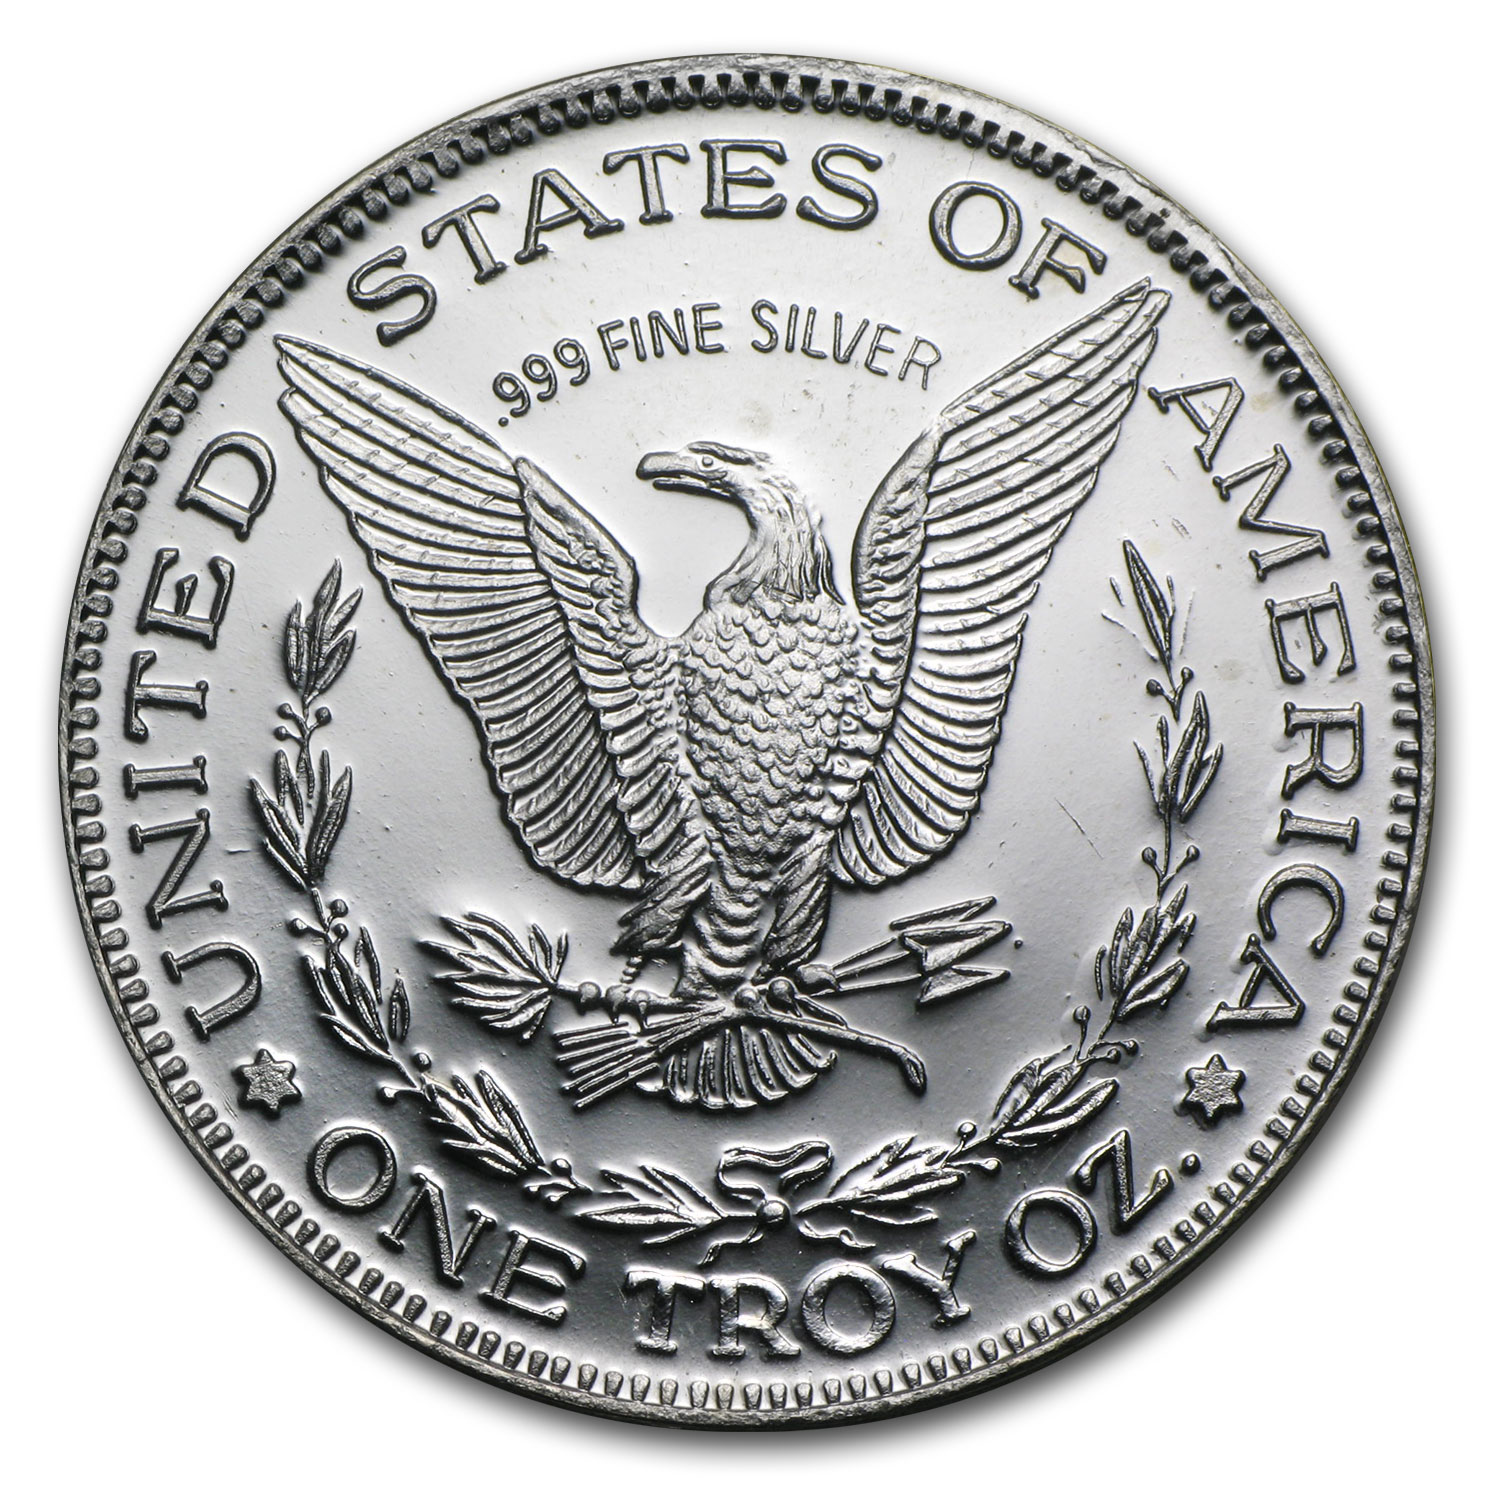 1 oz Silver Round - Statue of Liberty (Eternal Vigilance)